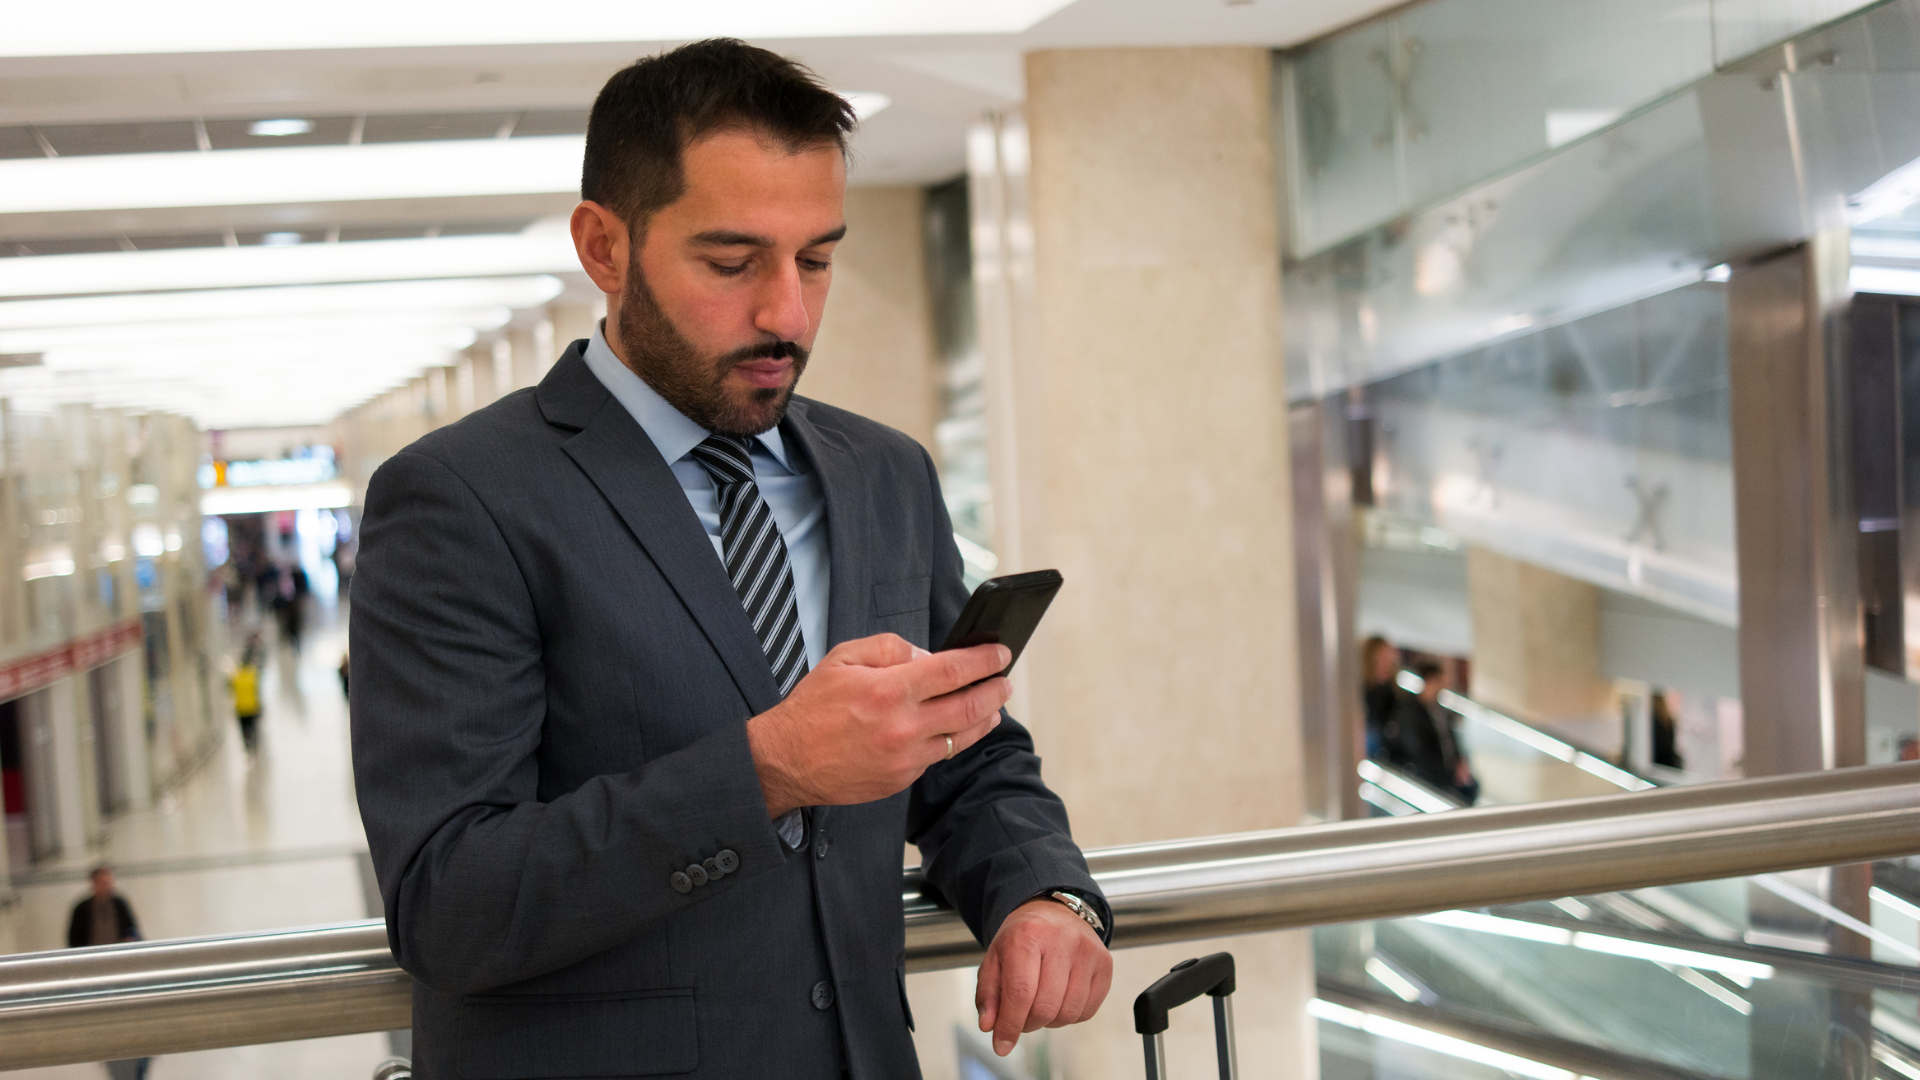 Business man texting on mobile phone